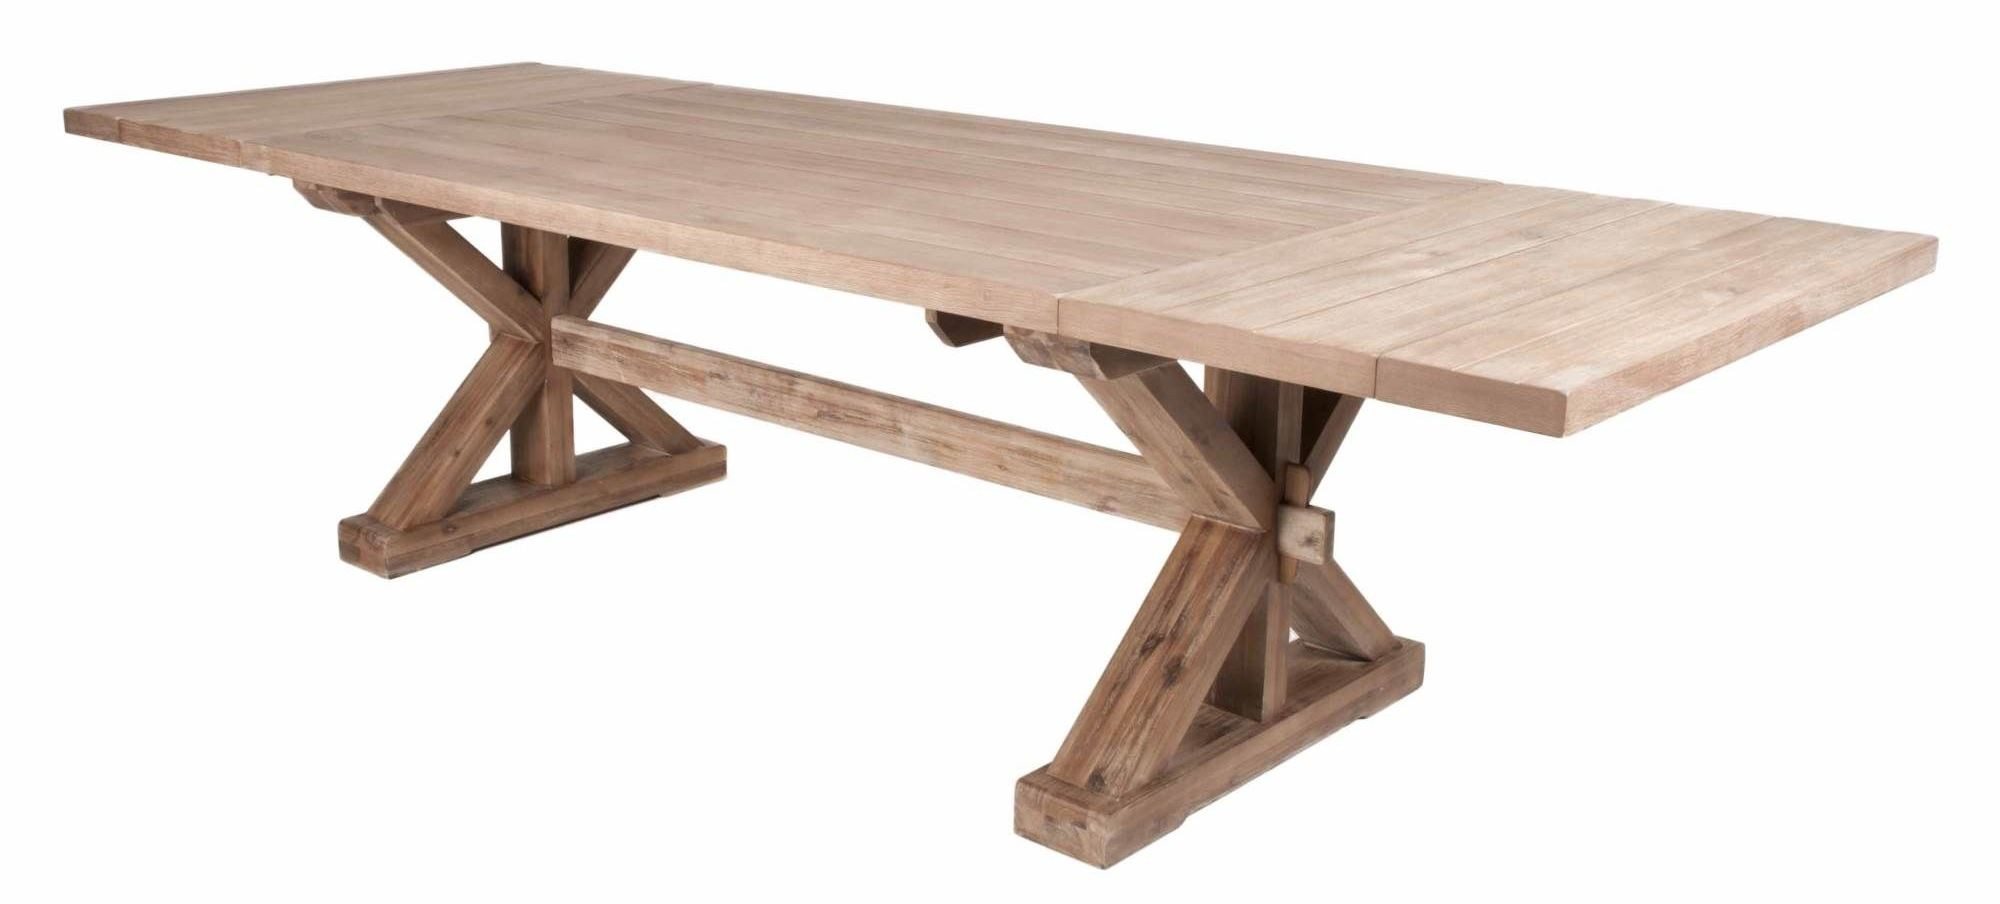 Extendable Trestle Table. Extendable Trestle Dining Table